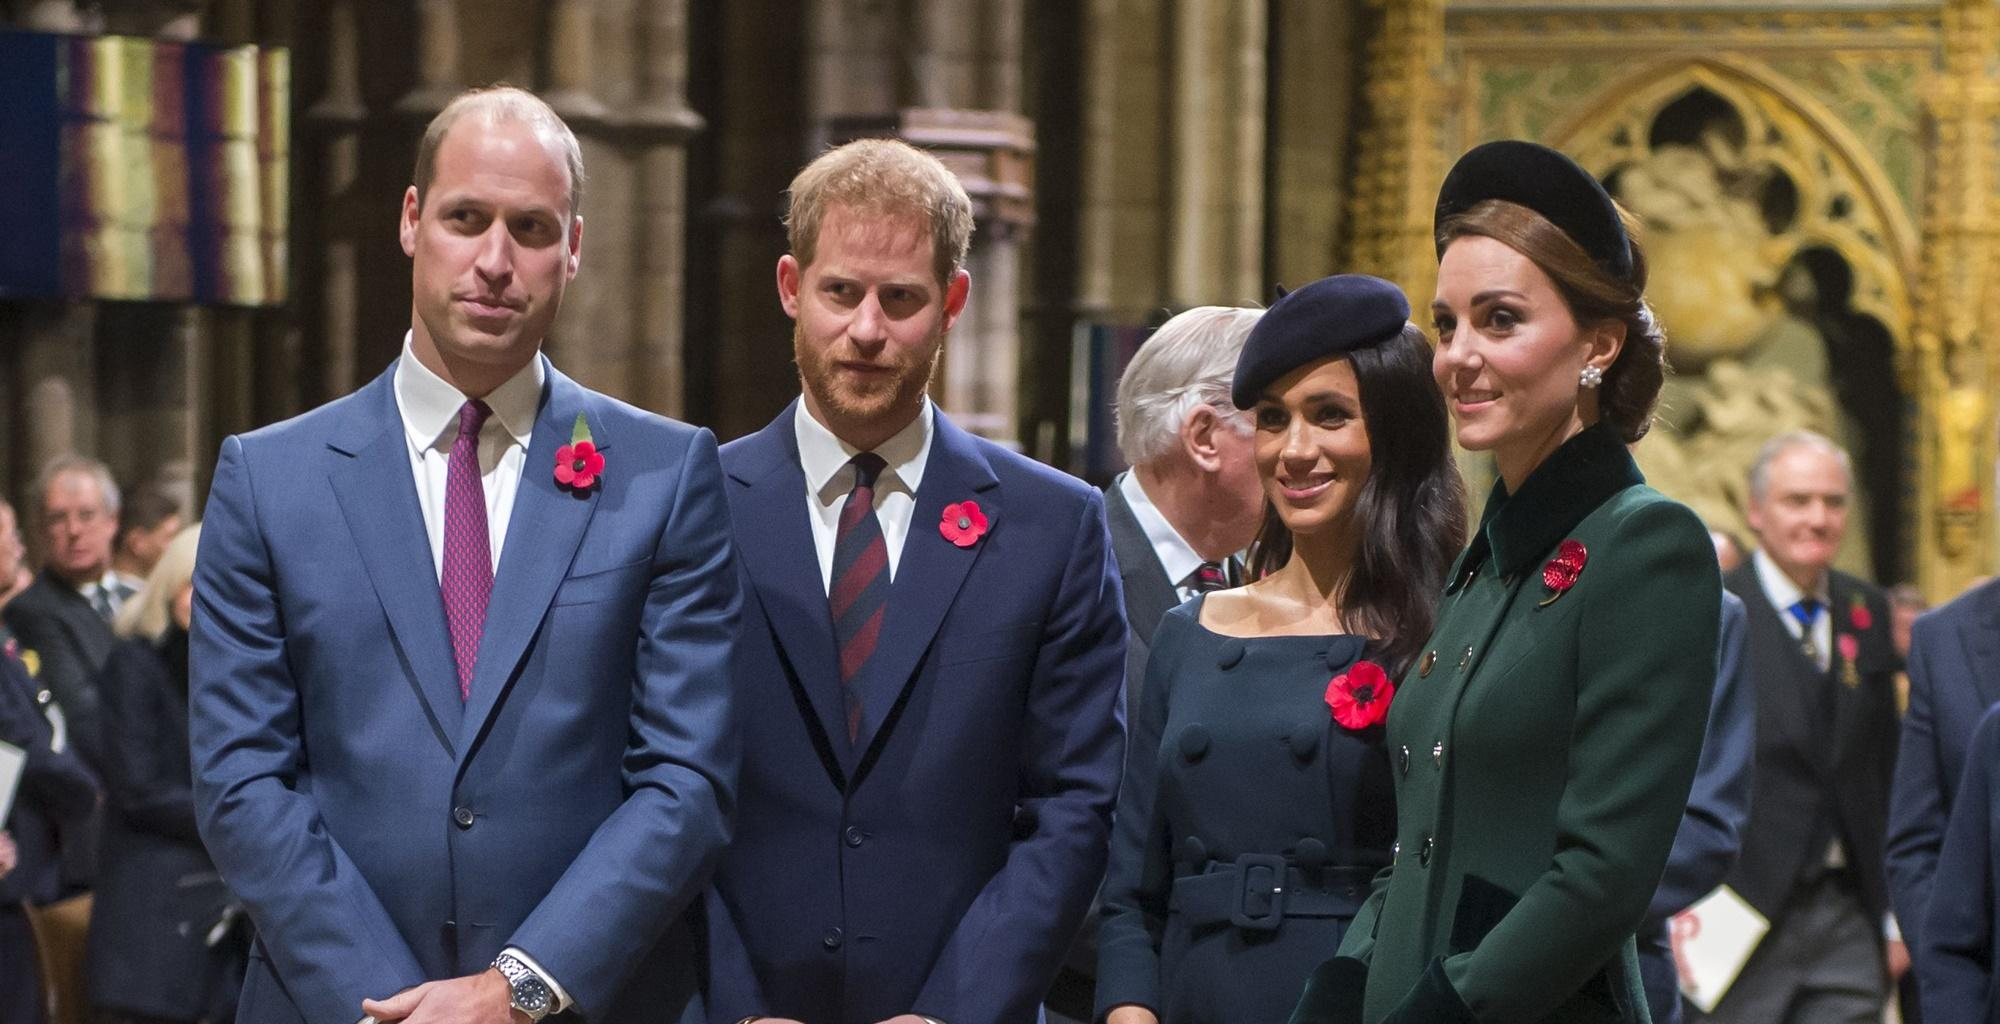 Amid Cheating Rumors Involving Kate Middleton's Friend, Rose Hanbury, Prince William Still Has Not Totally Made Peace With Prince Harry Over Meghan Markle